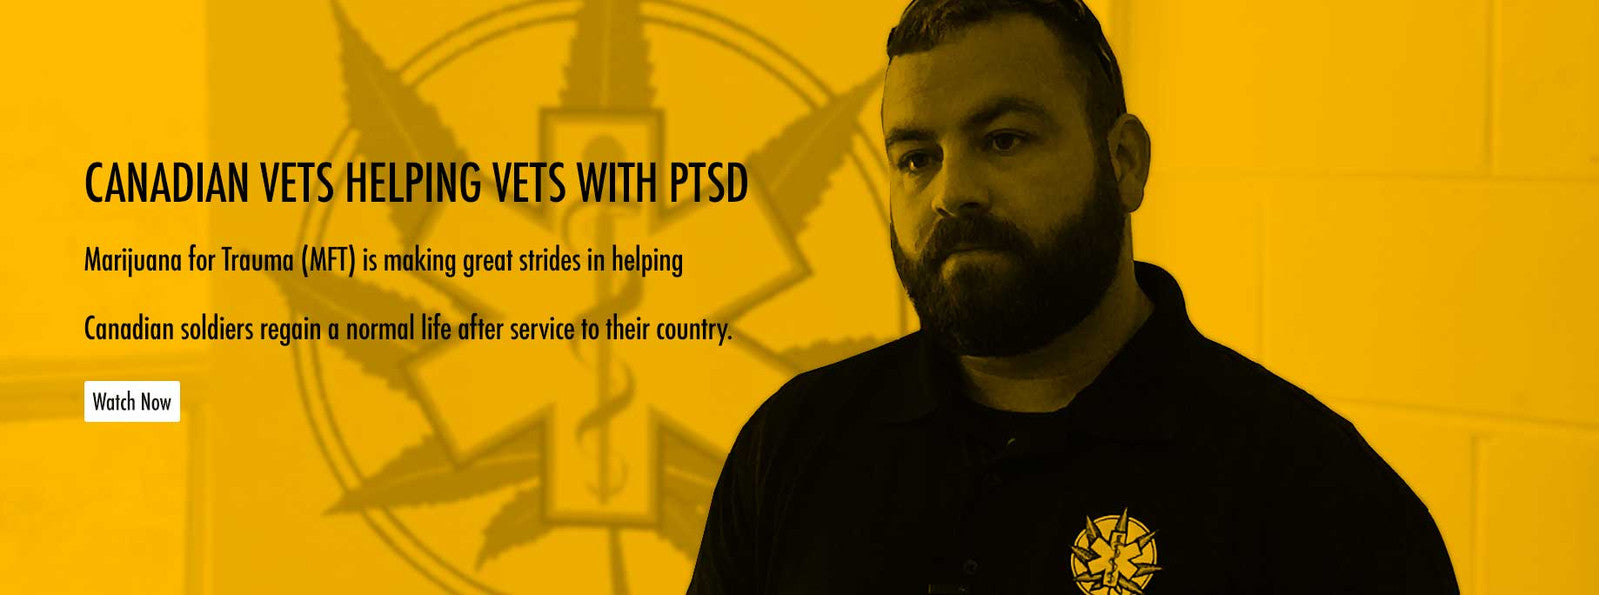 Vets Treating PTSD With Marijuana